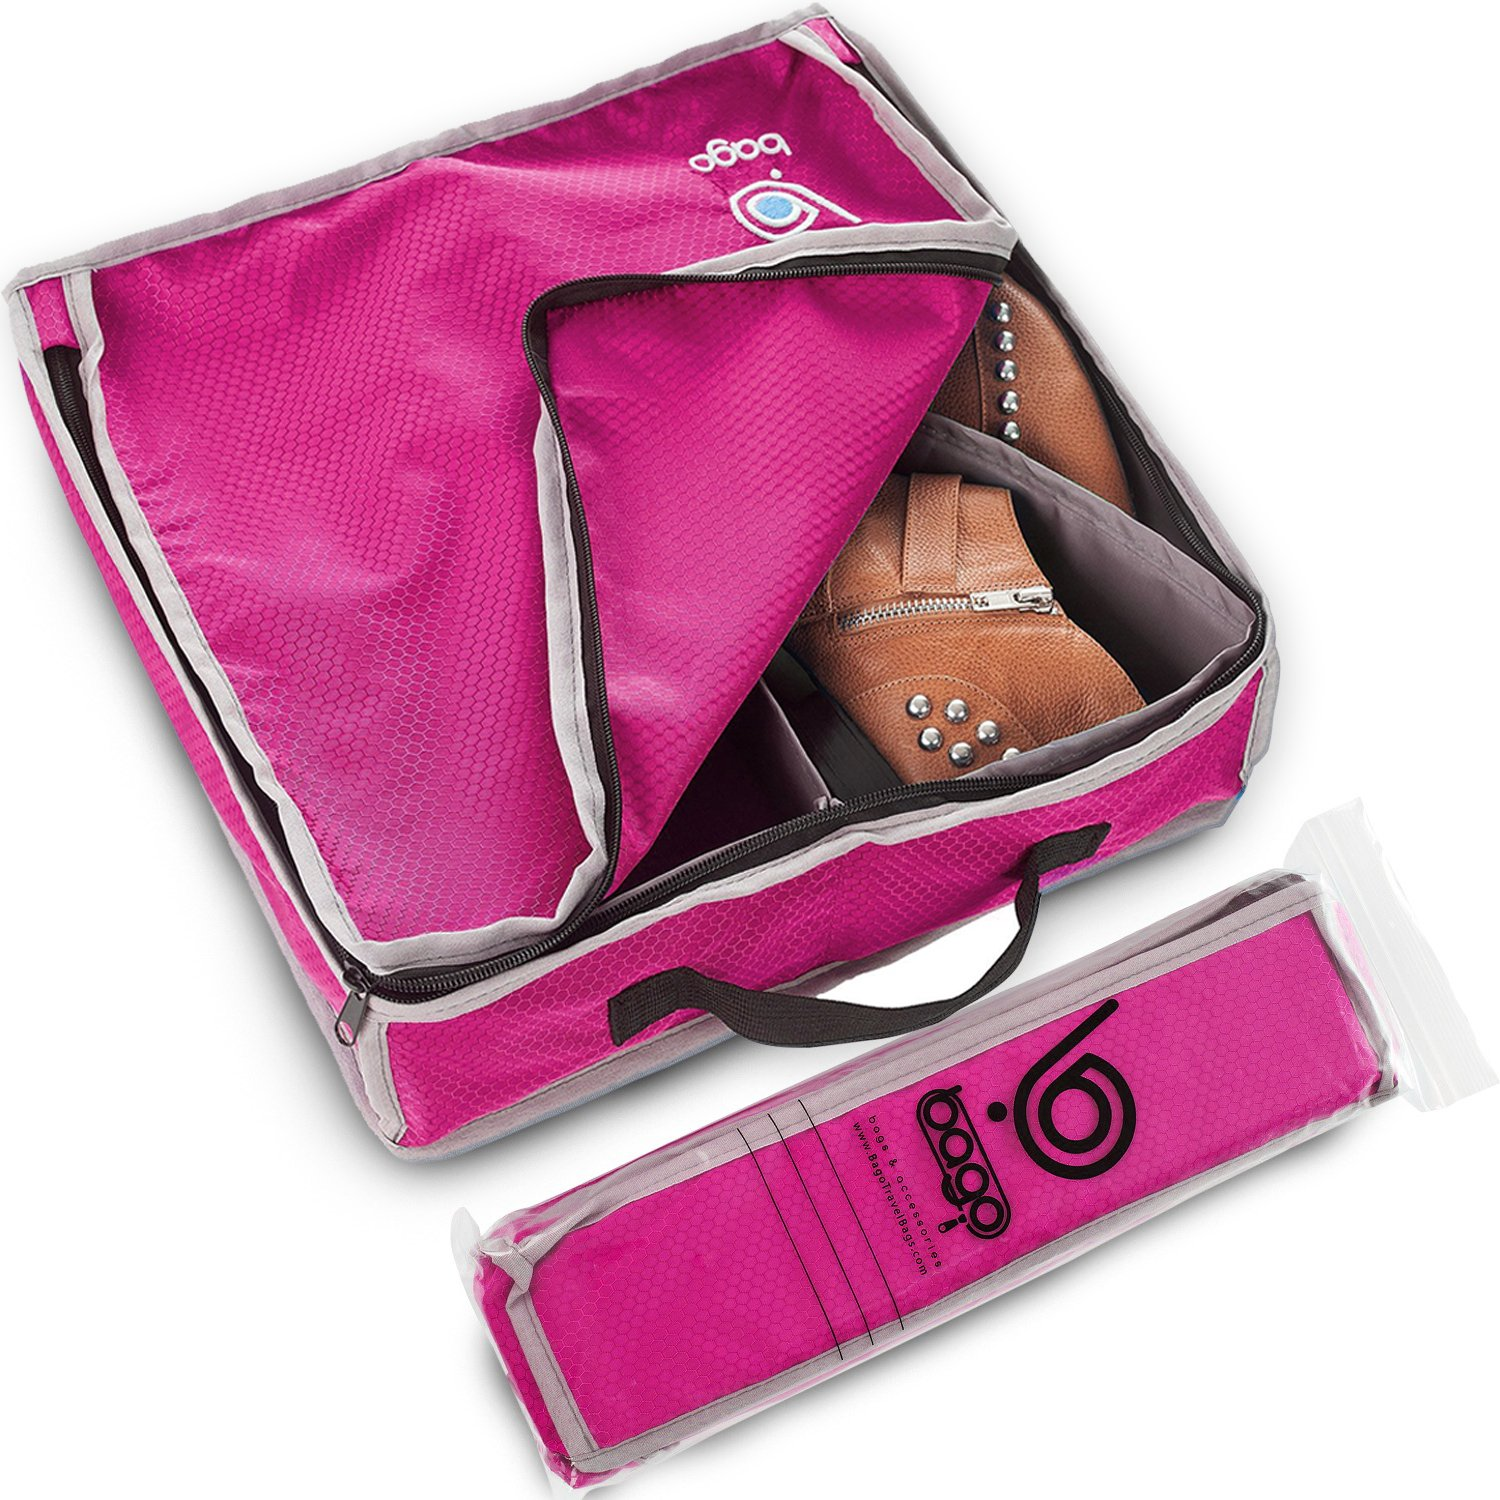 Bago Shoes Bag for Travel - Hanging Packing Cubes for Women Man Kids Storage. Modular Pouch for 1 or 2 sets of Shoes (Pink)